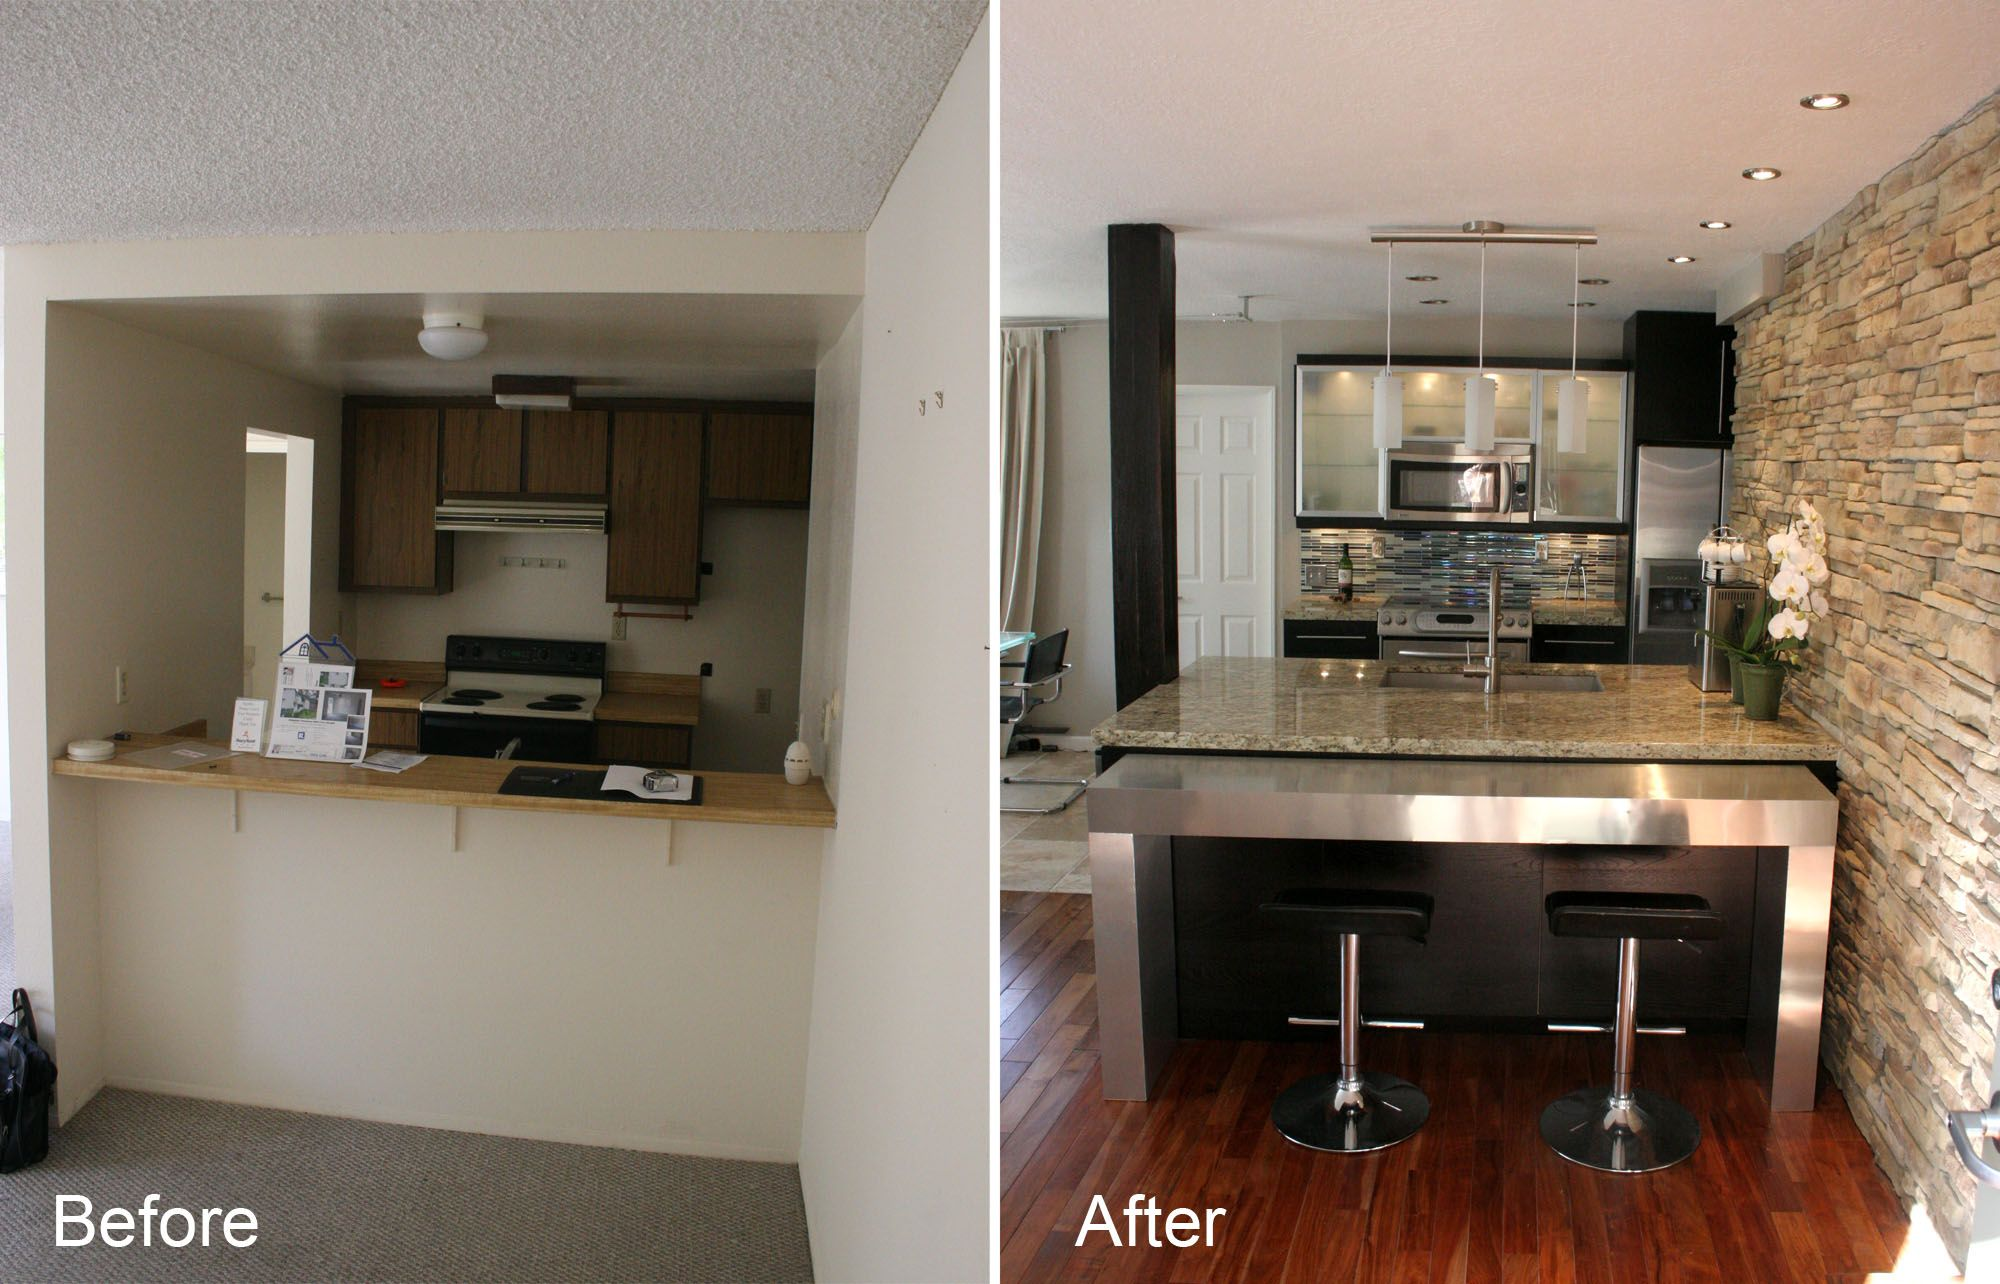 kitchens remodeling kitchen design center remodels before and after planning in a down economy